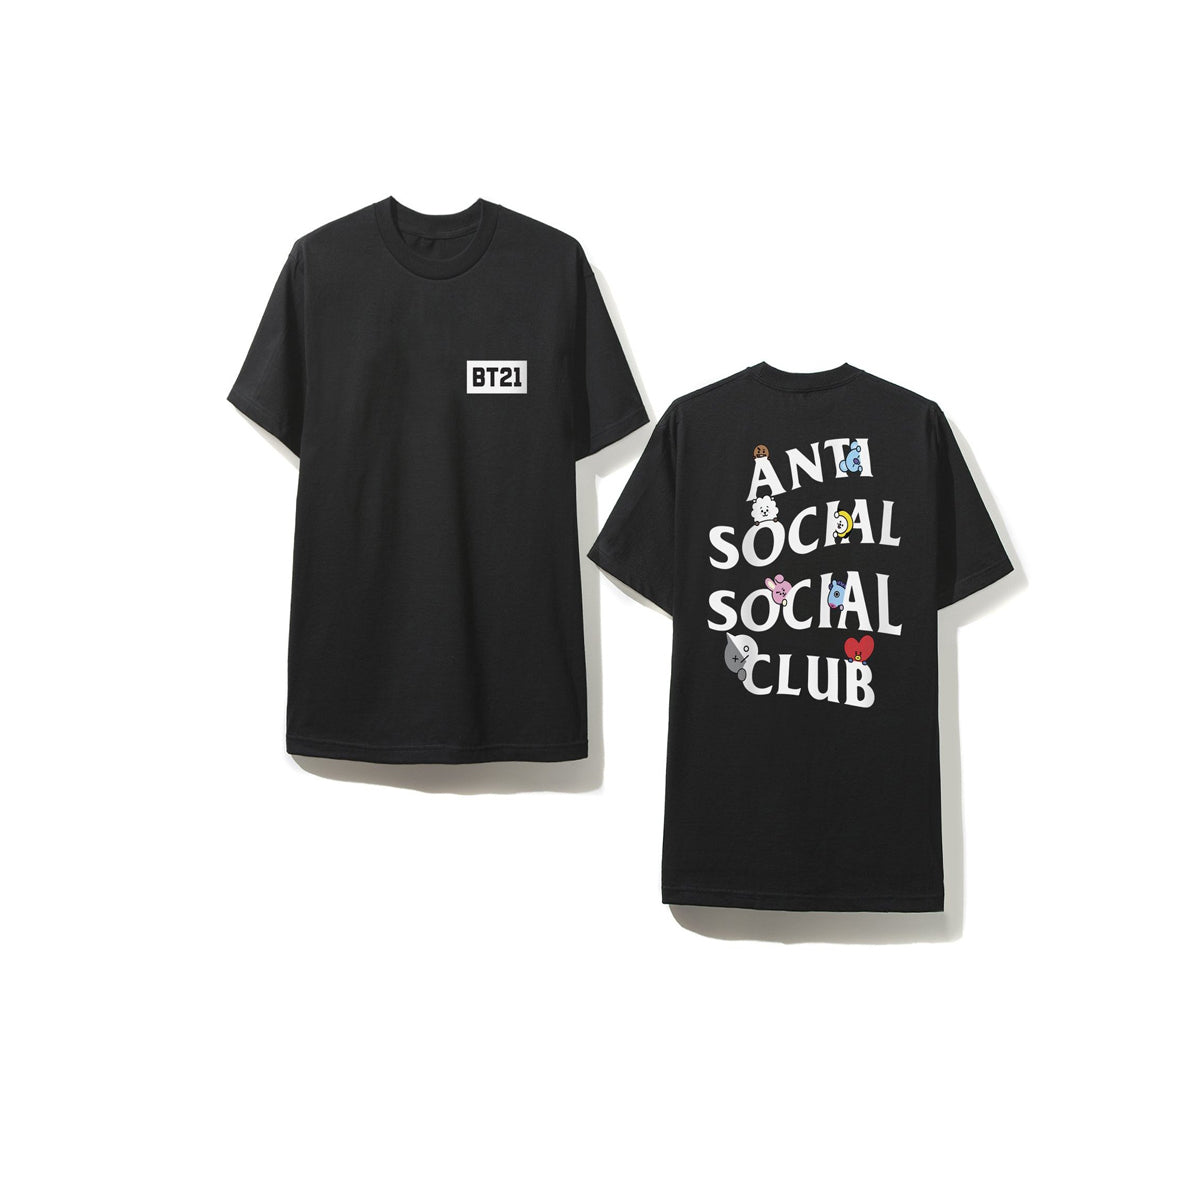 "Short Sleeve O-neck Collar Bt21 Shirt with ""Anti-Social Social Club"" Phrase"